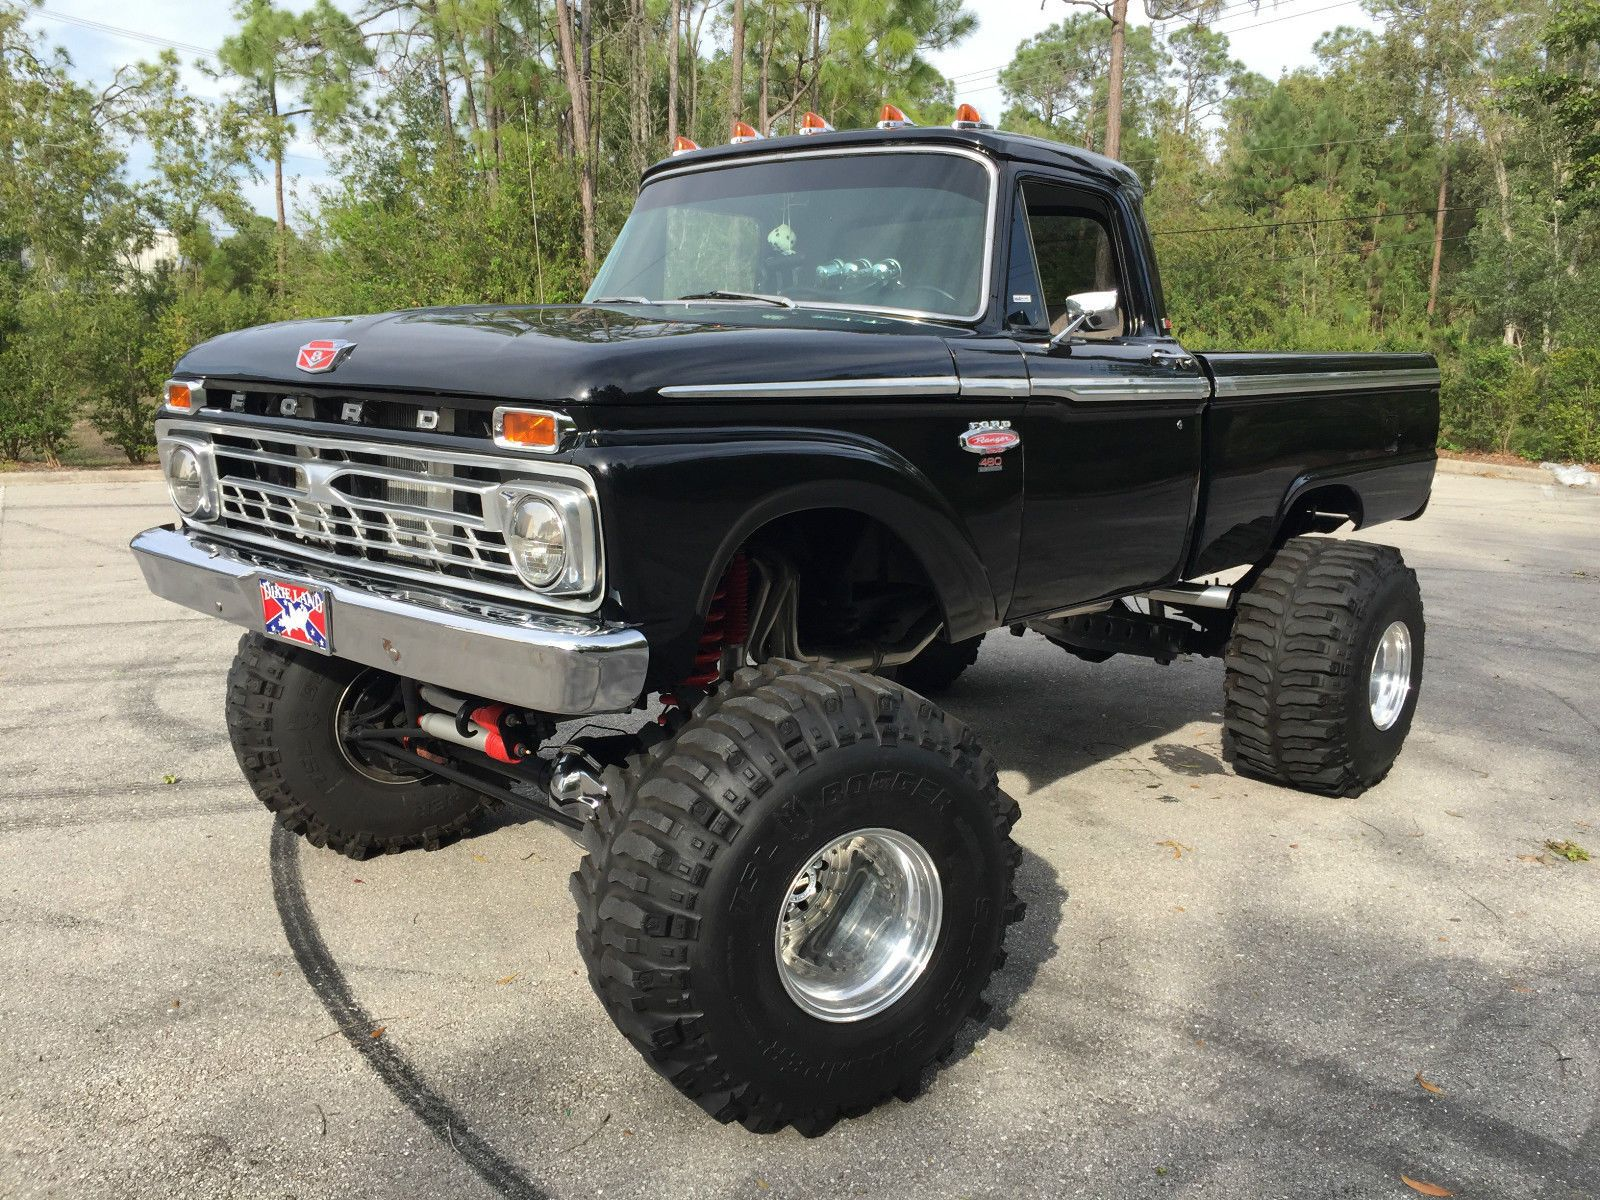 1966 FORD F100 1 TON SHOW TRUCK WITH 650HP.jpg